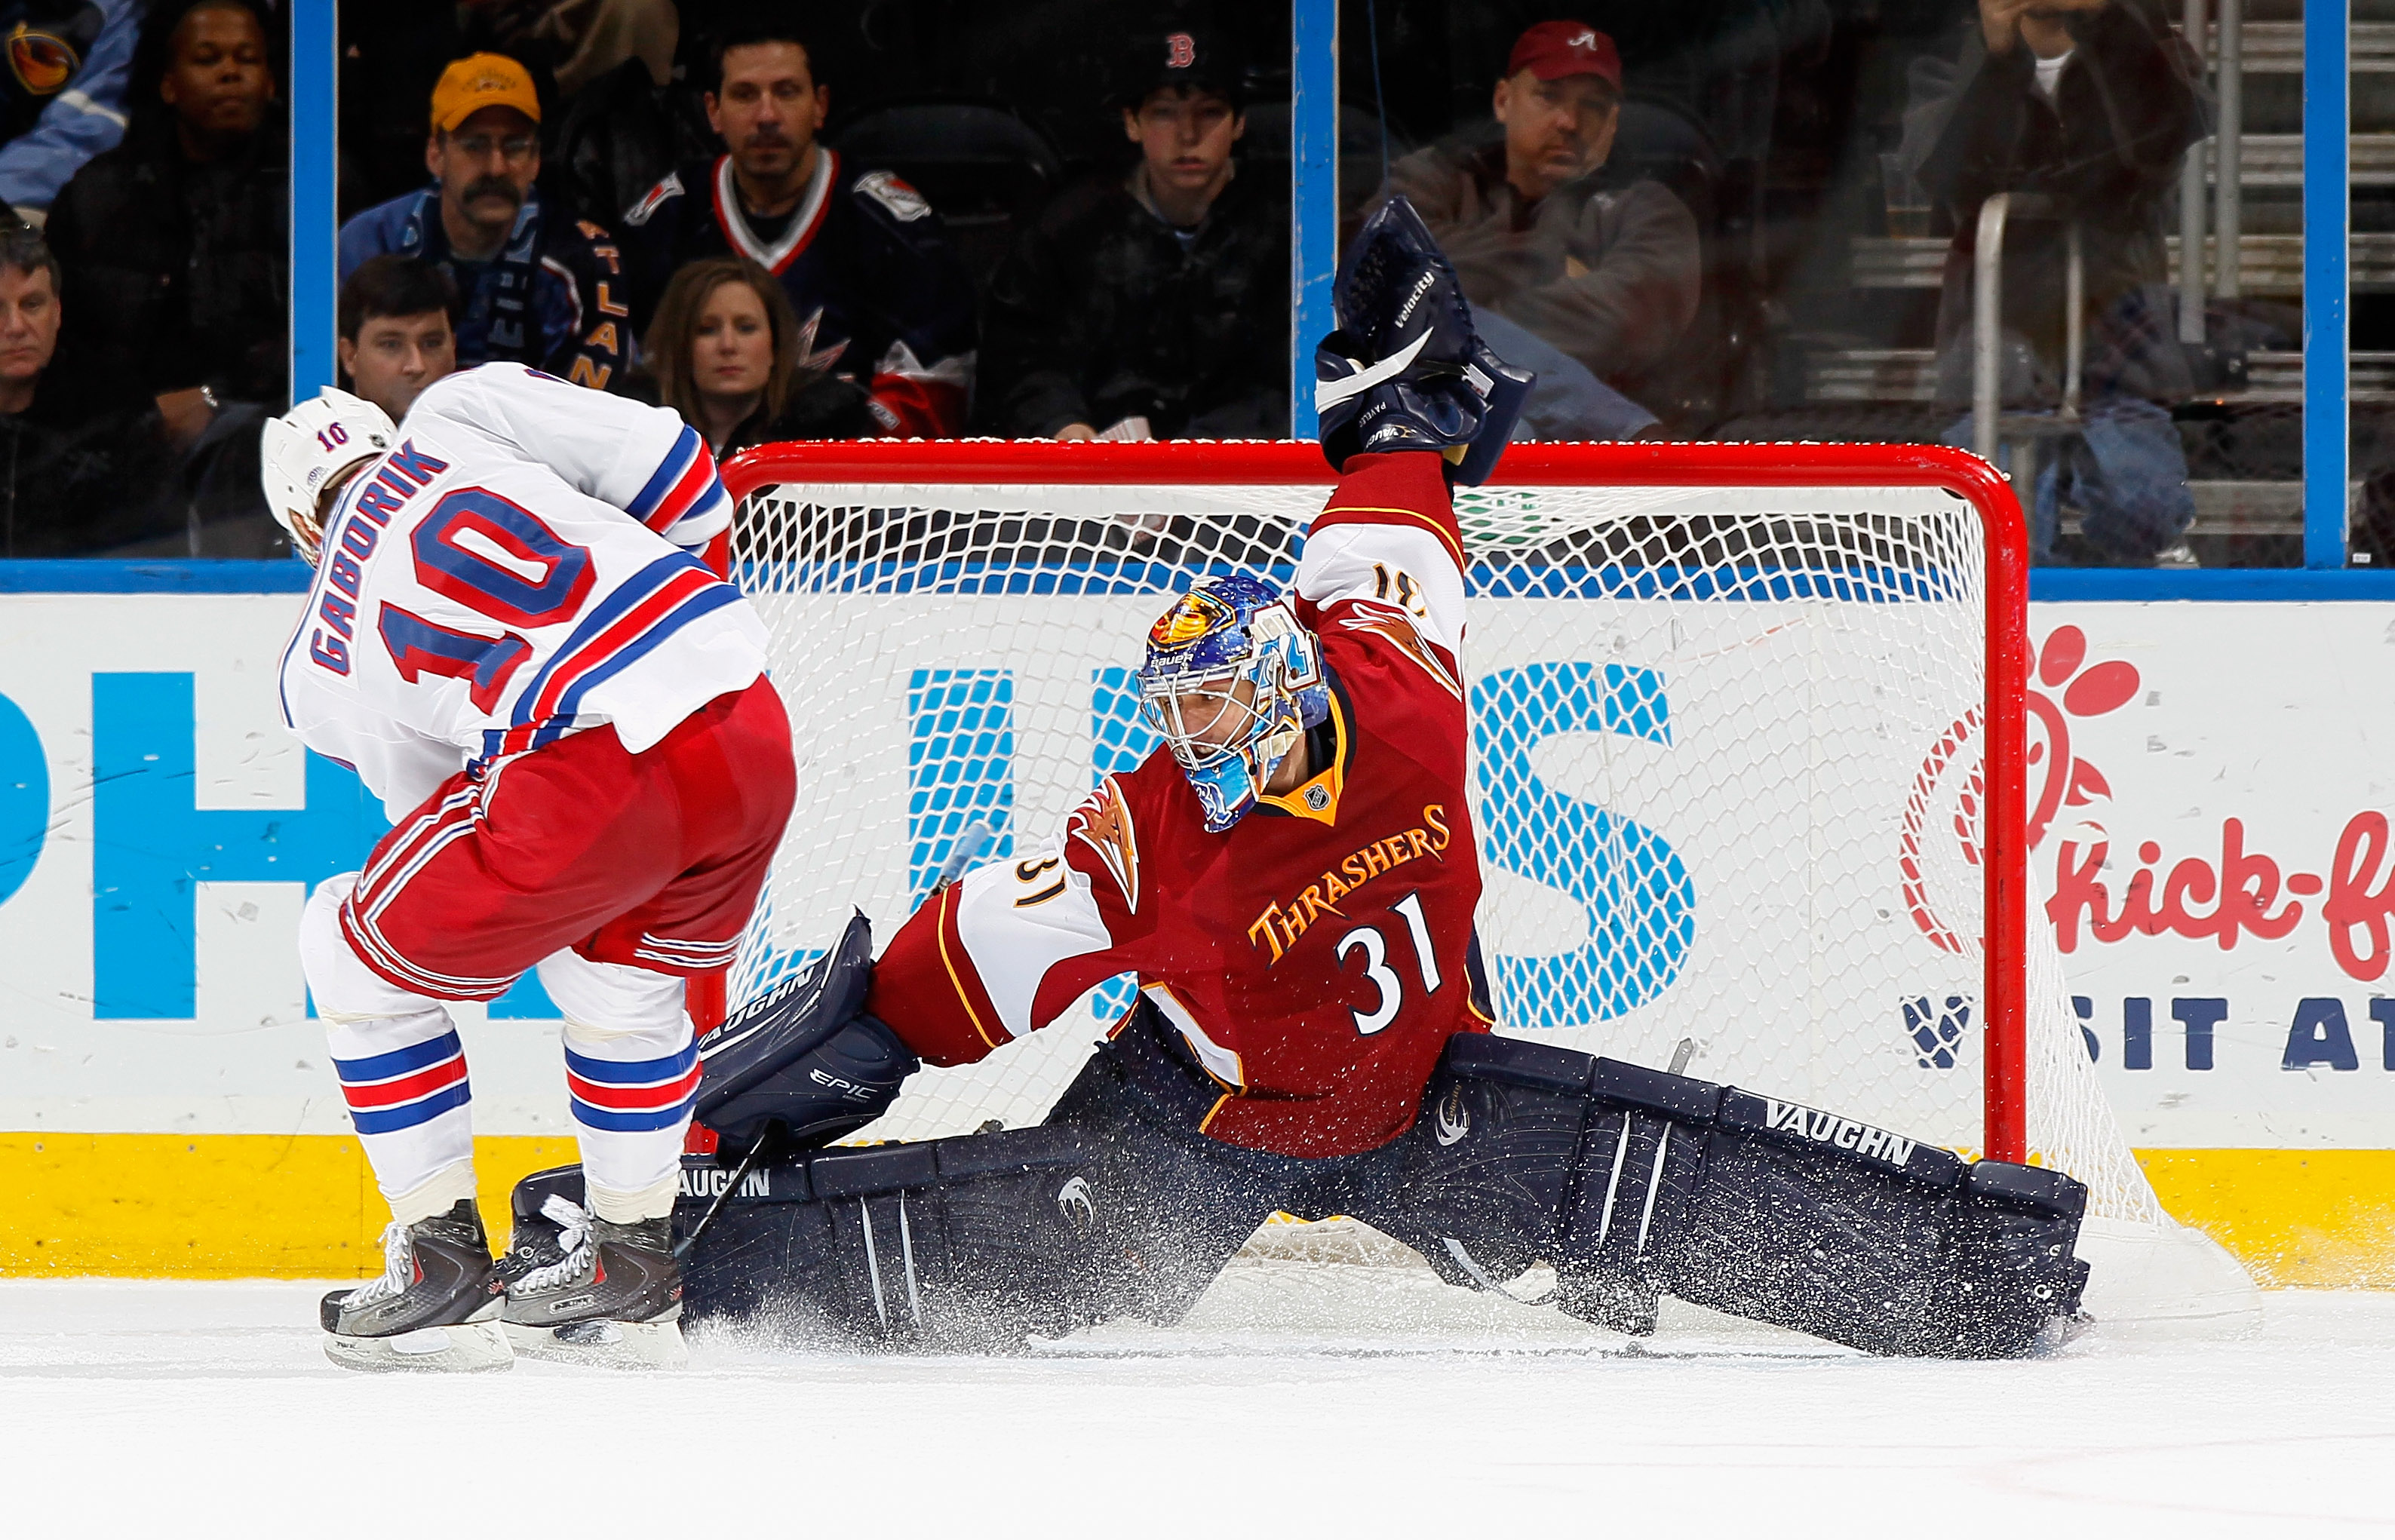 ATLANTA, GA - FEBRUARY 11:  Goaltender Ondrej Pavelec #31 of the Atlanta Thrashers saves a penalty shot by Marian Gaborik #10 of the New York Rangers at Philips Arena on February 11, 2011 in Atlanta, Georgia.  (Photo by Kevin C. Cox/Getty Images)